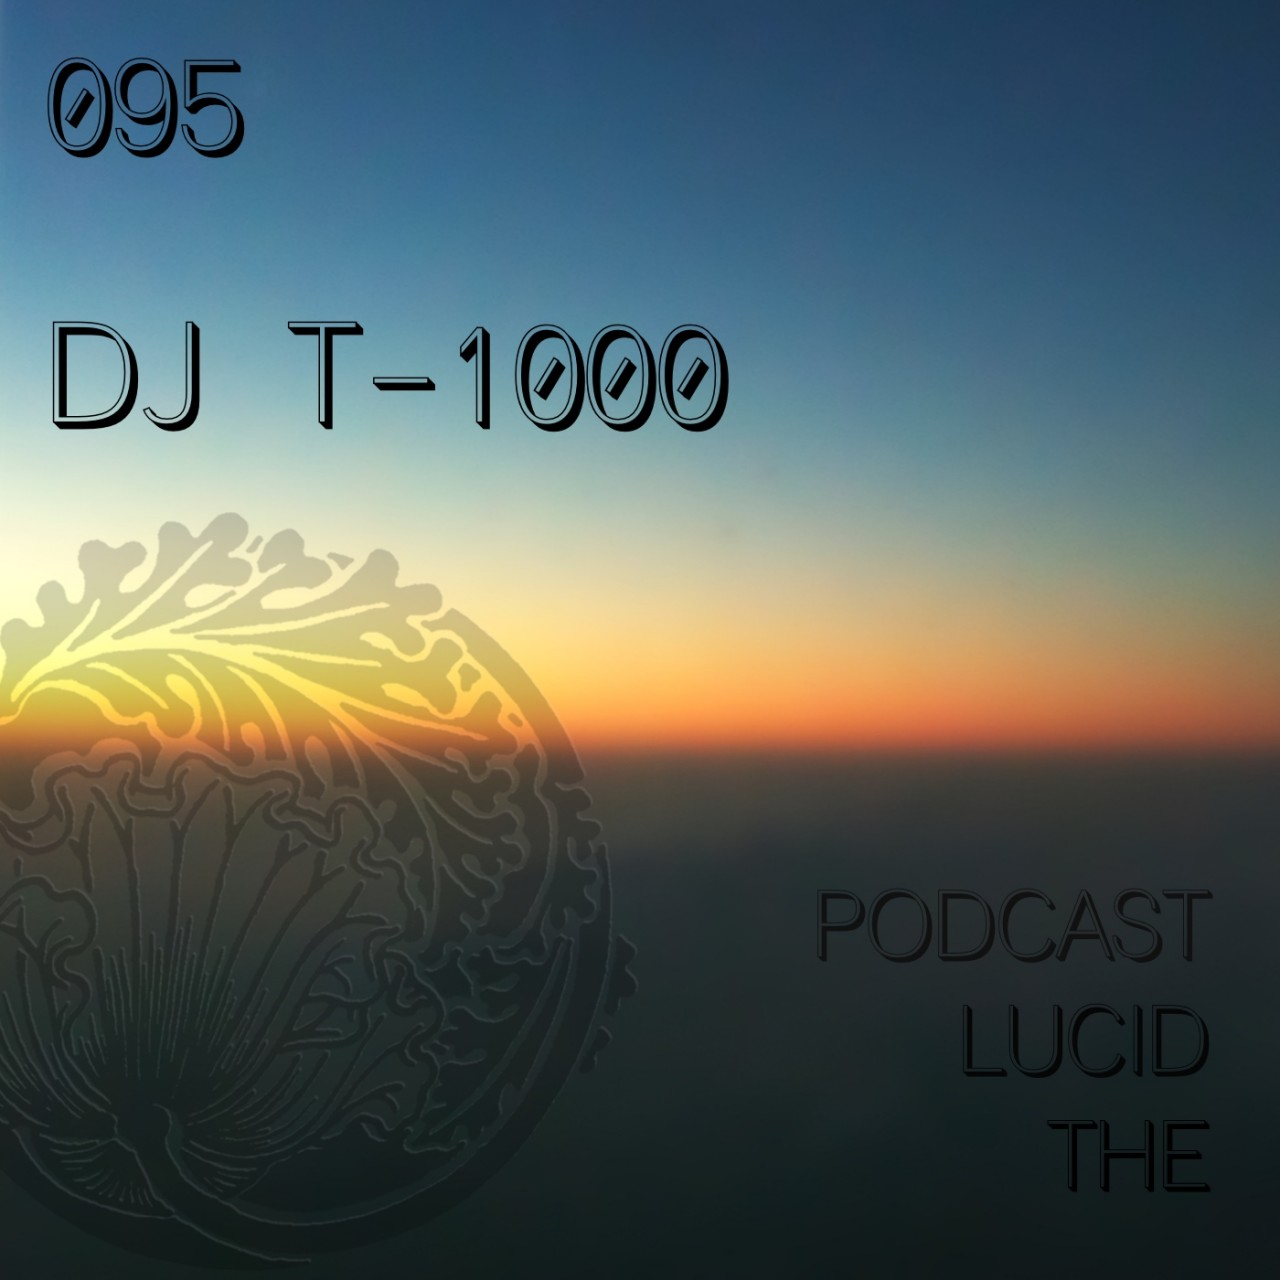 The Lucid Podcast 095 DJ T-1000